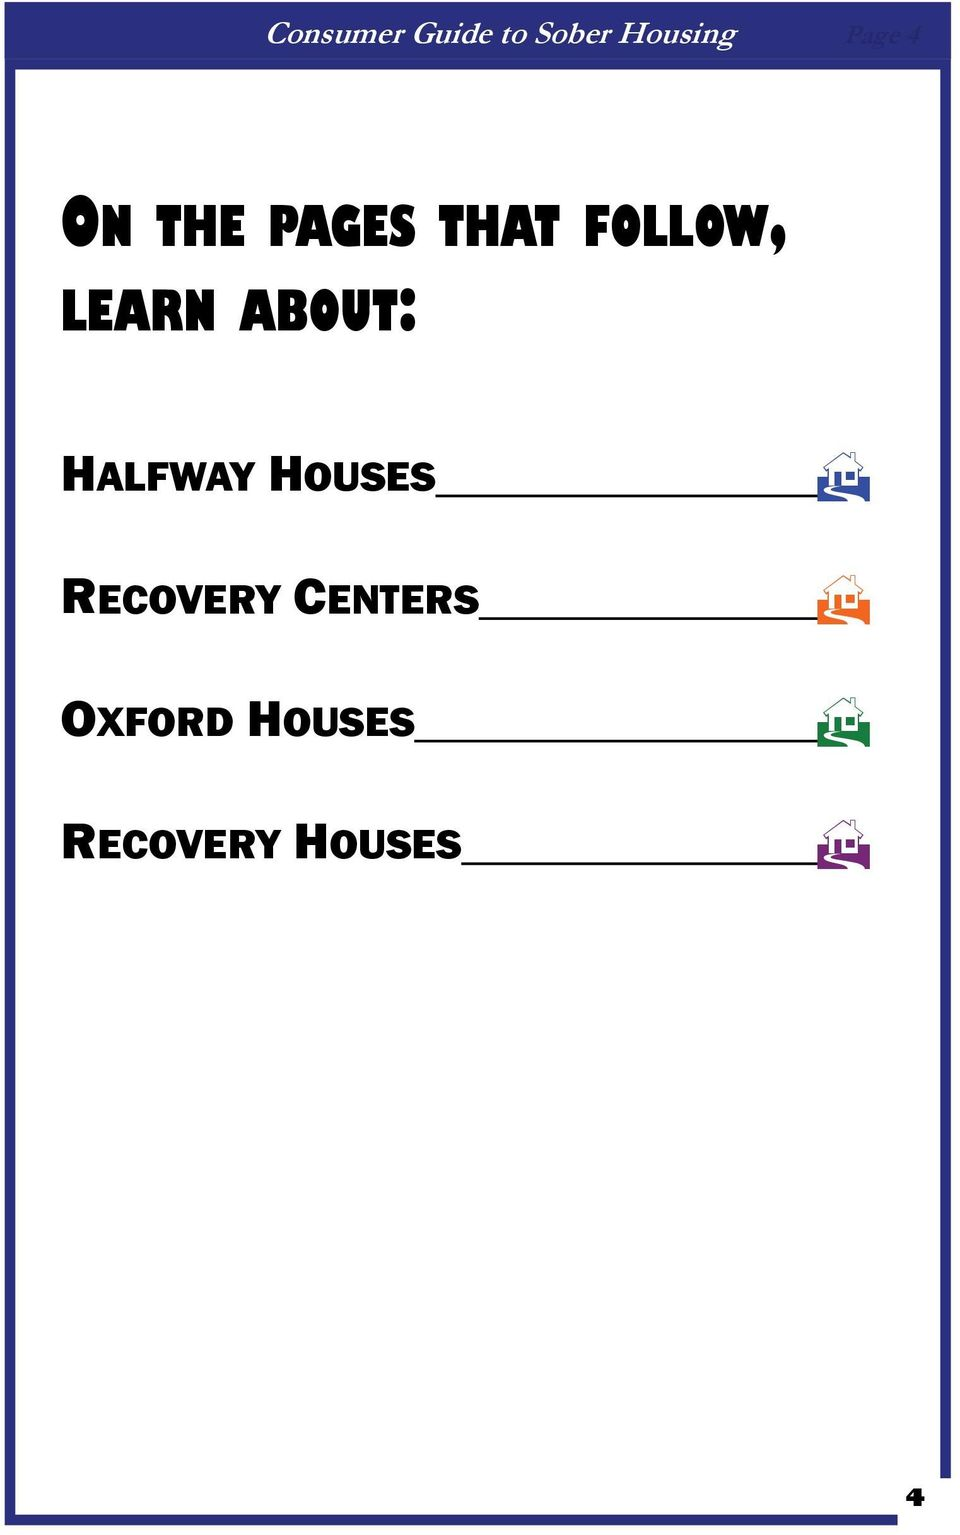 HALFWAY HOUSES RECOVERY